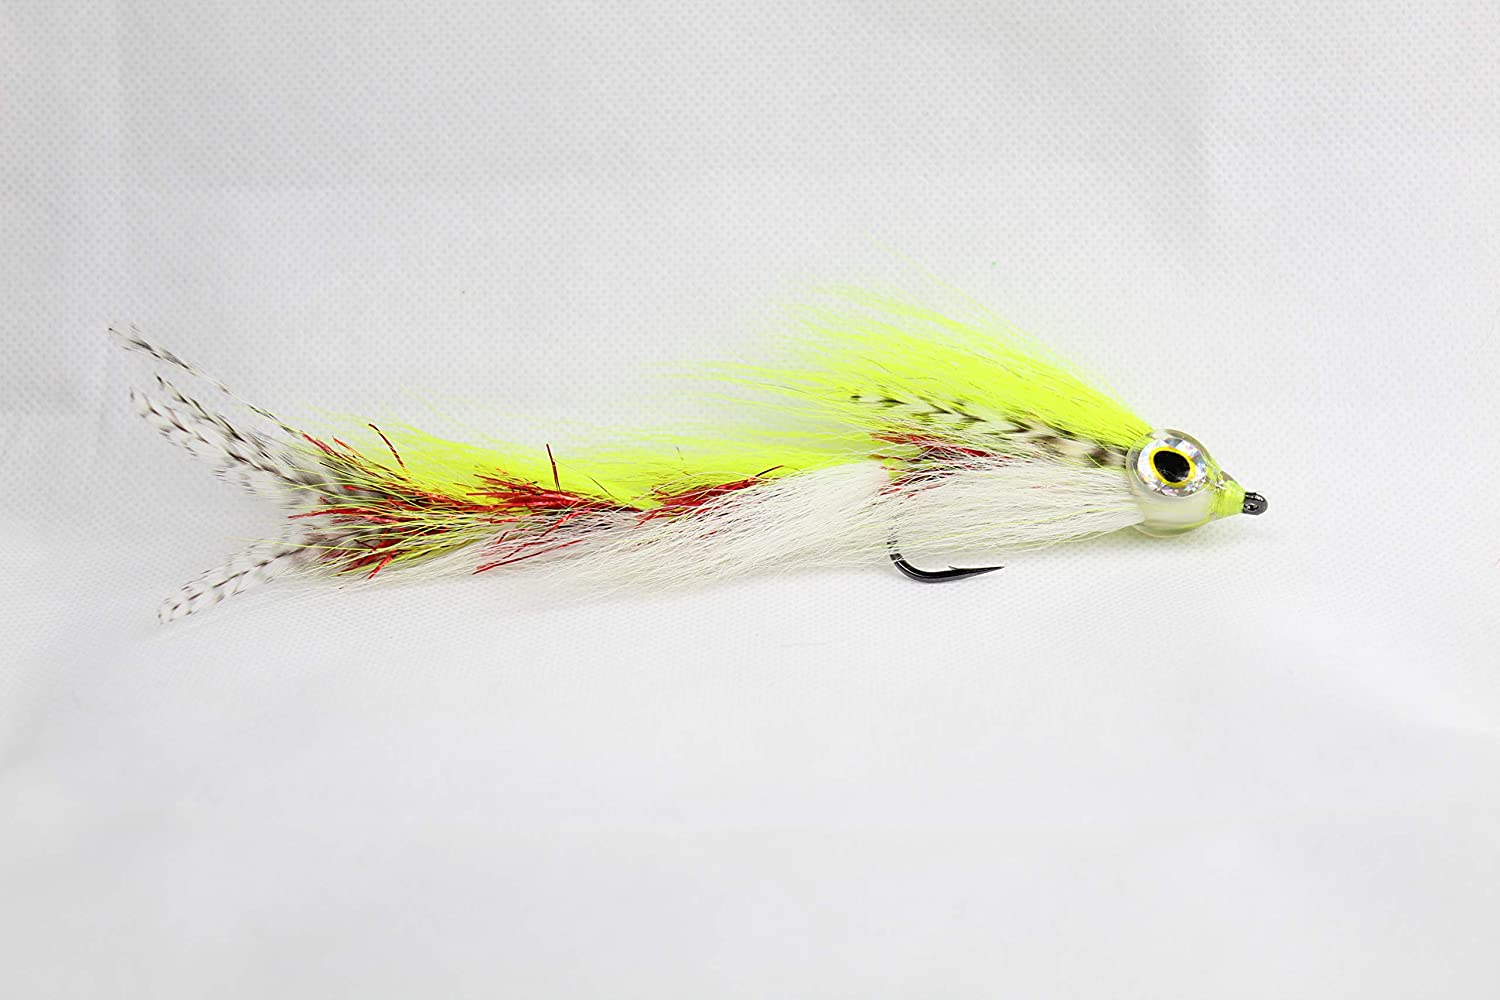 Fishing Lure Haggerty Lures Peacock Bass Big Game Changer Fly Premium Jointed Streamer  Muskie Pike Musky